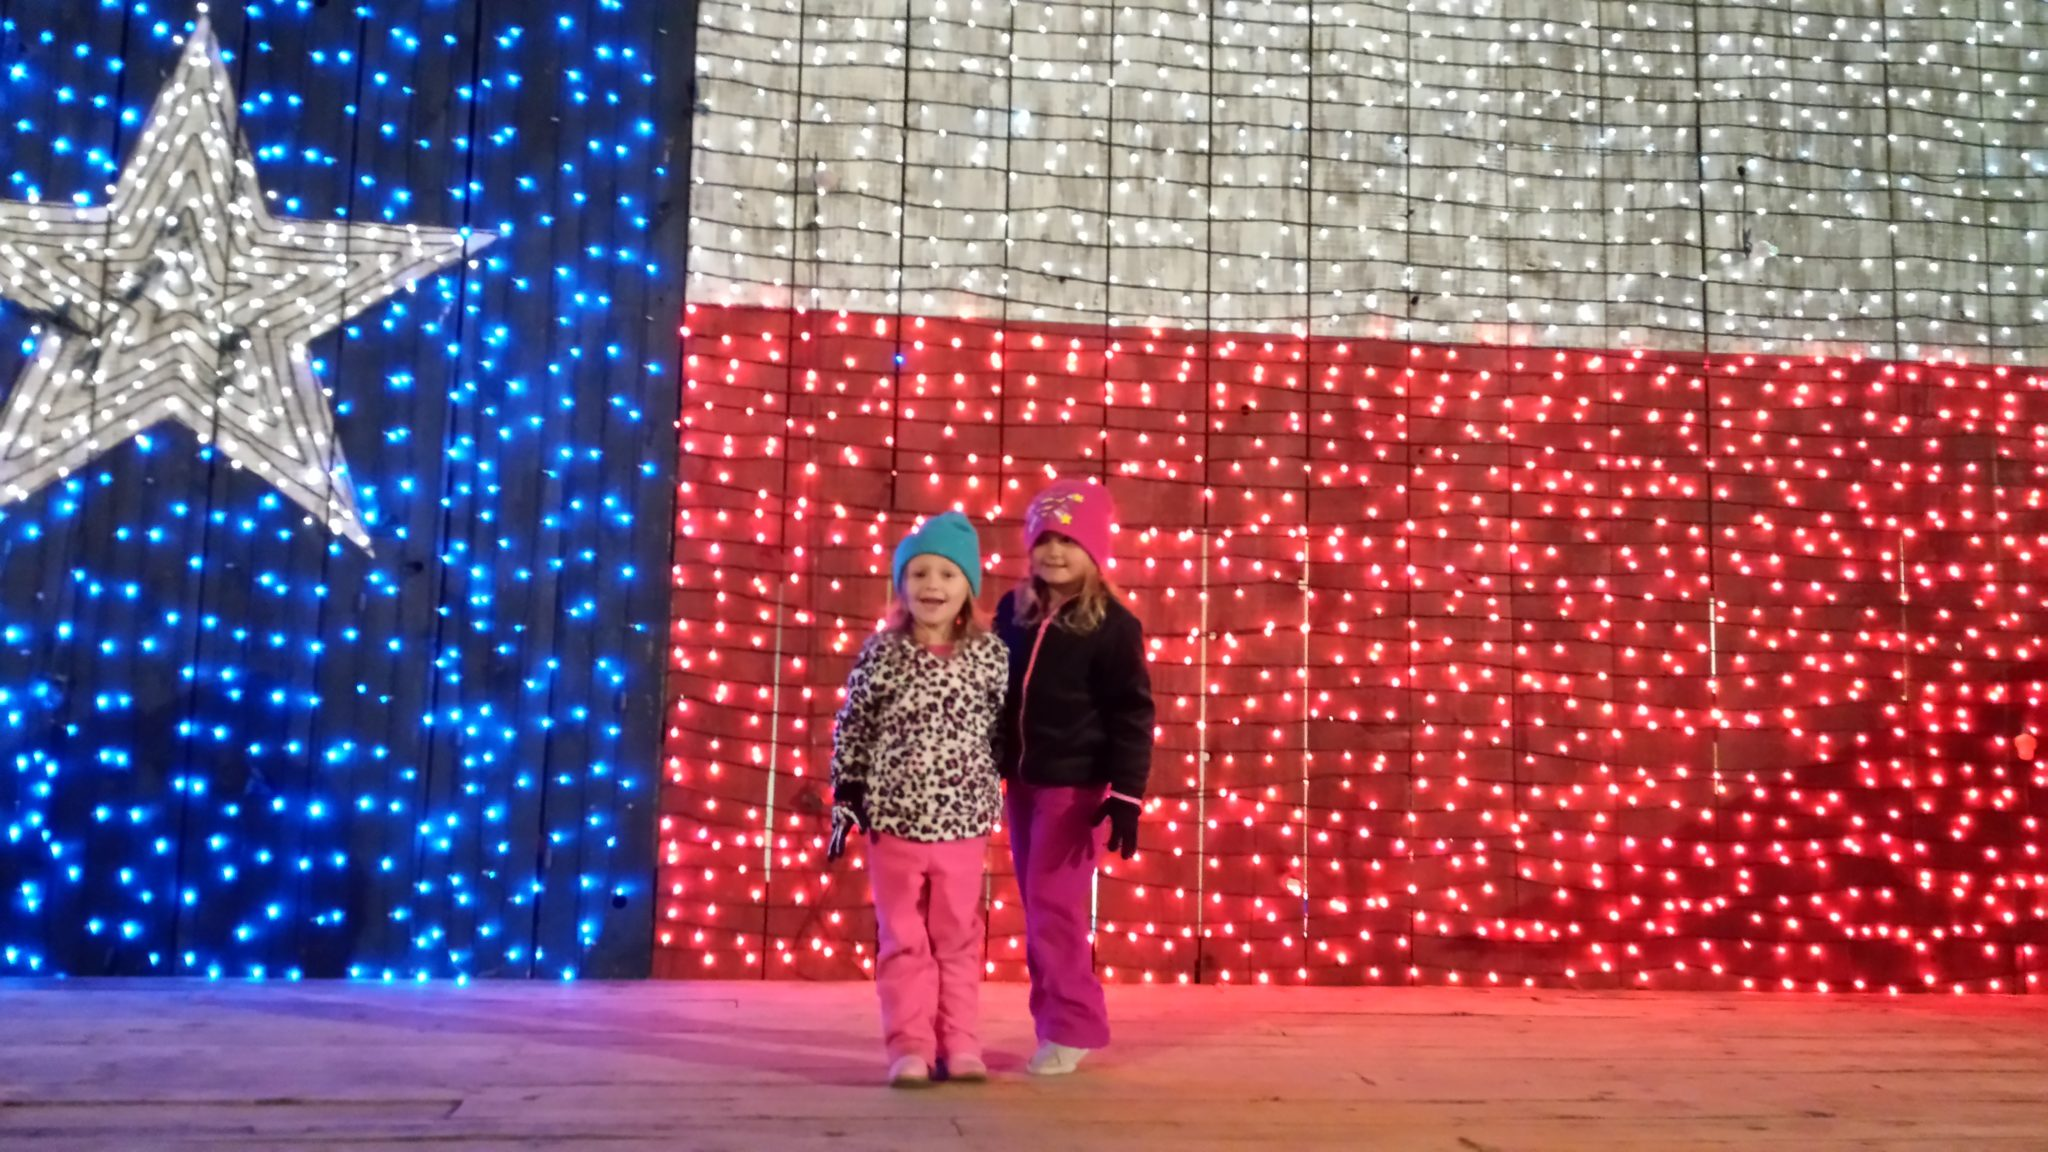 the texas flag light set up is a popular family picture spot at santas wonderland - College Station Christmas Lights Park